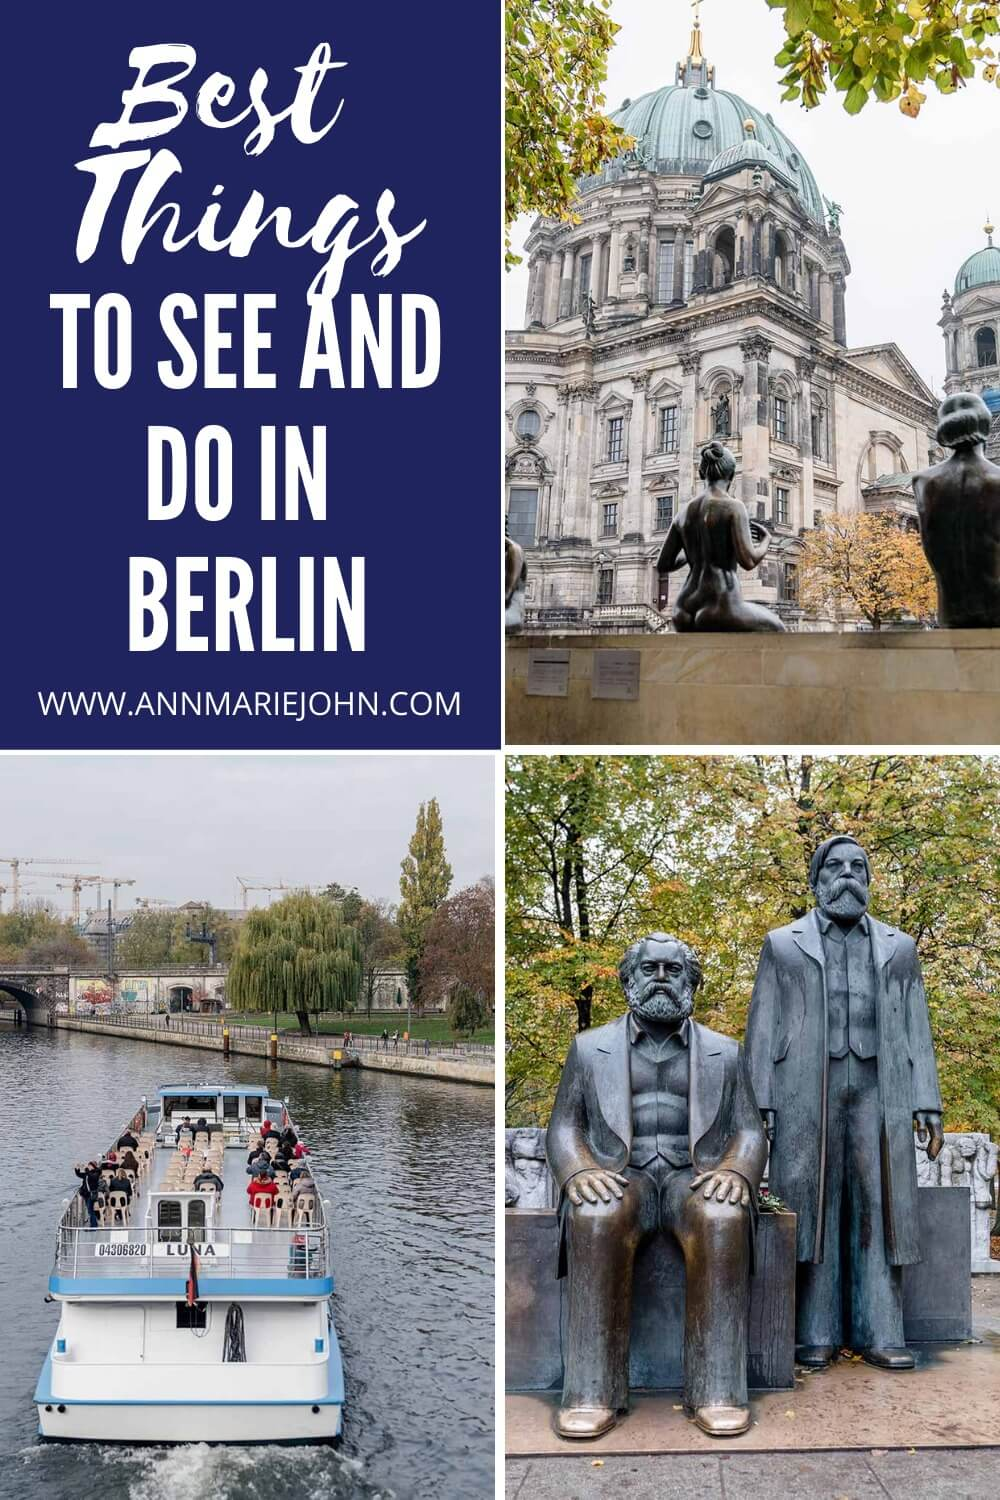 Best Things to See and Do in Berlin.